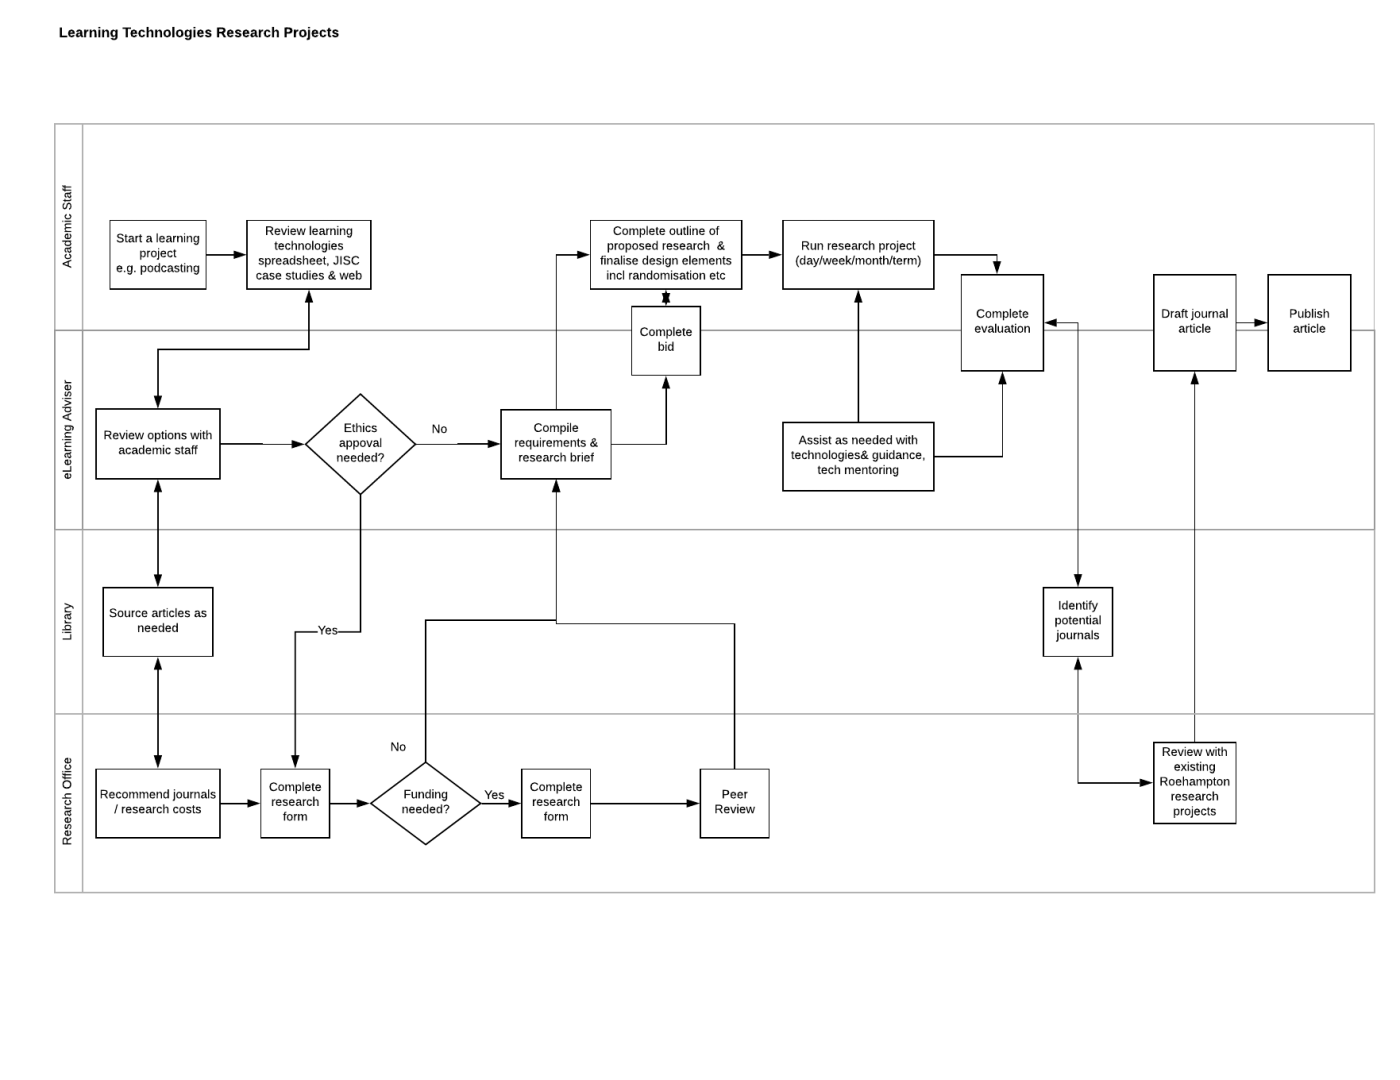 flowchart of learning technologies research project with forus swimlanes